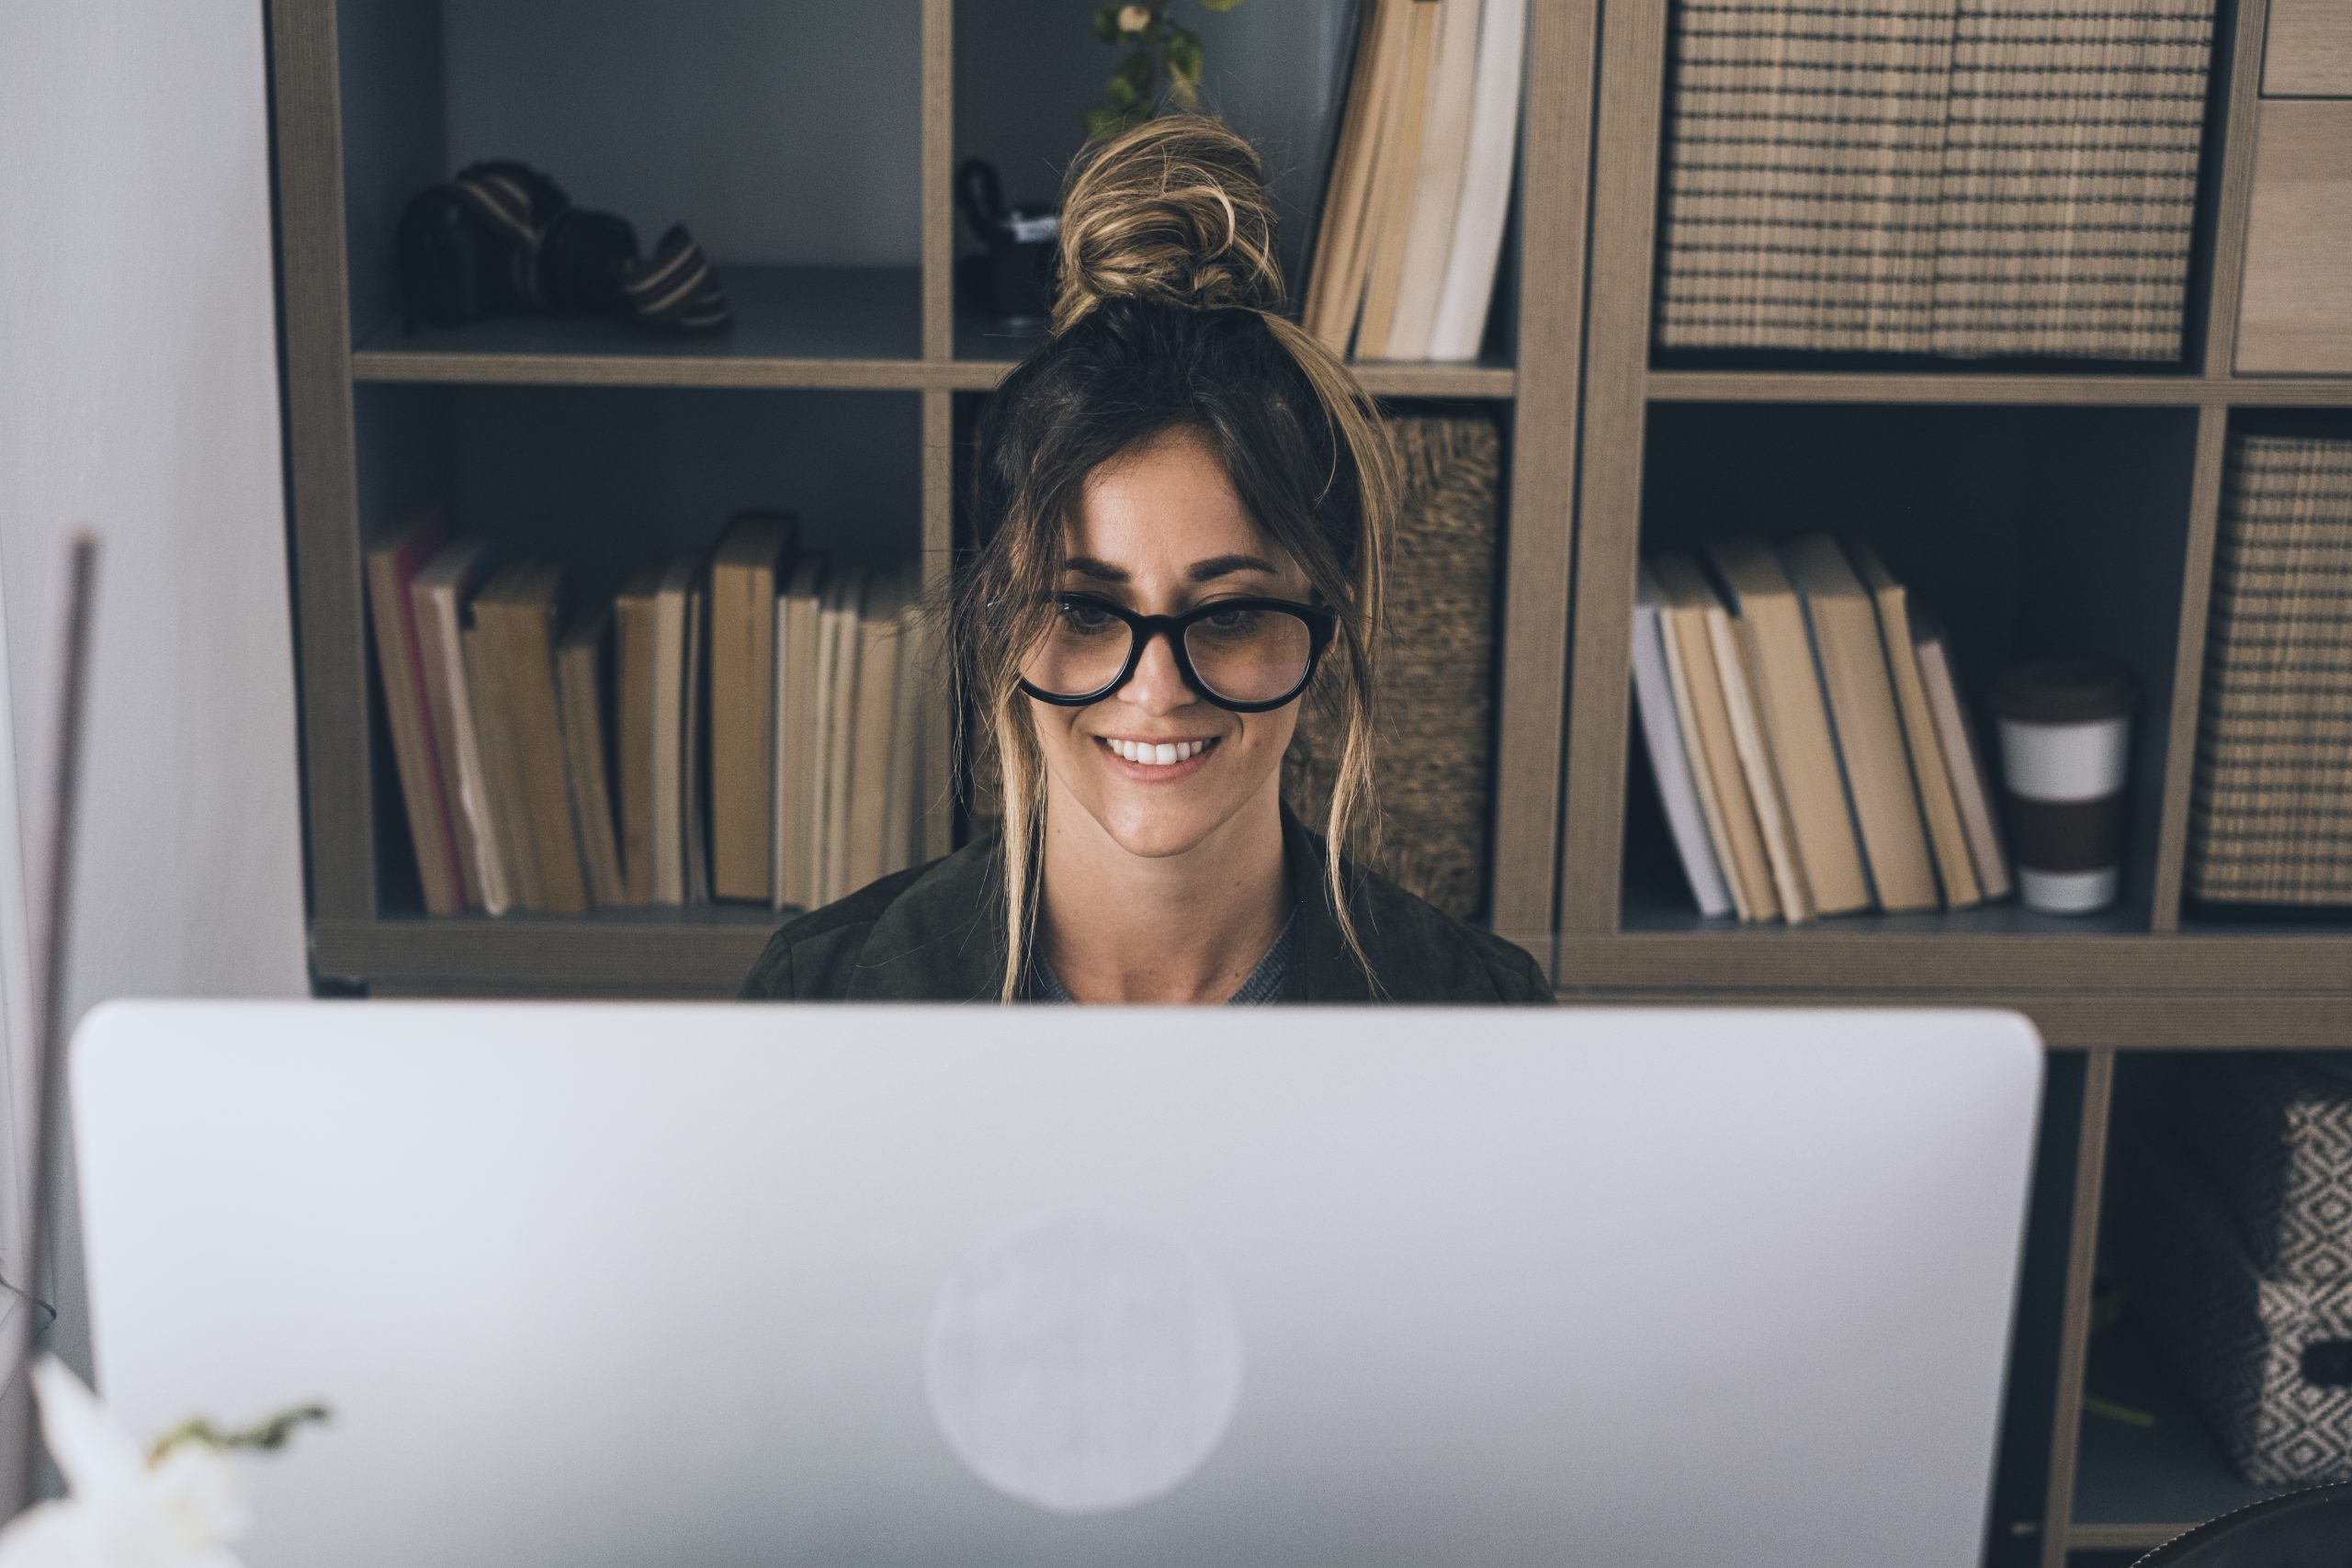 Video conference call in online smart working remote work job home office activity with pretty middle age woman enjoying online modern technology and internet connection to be free - businesswoman